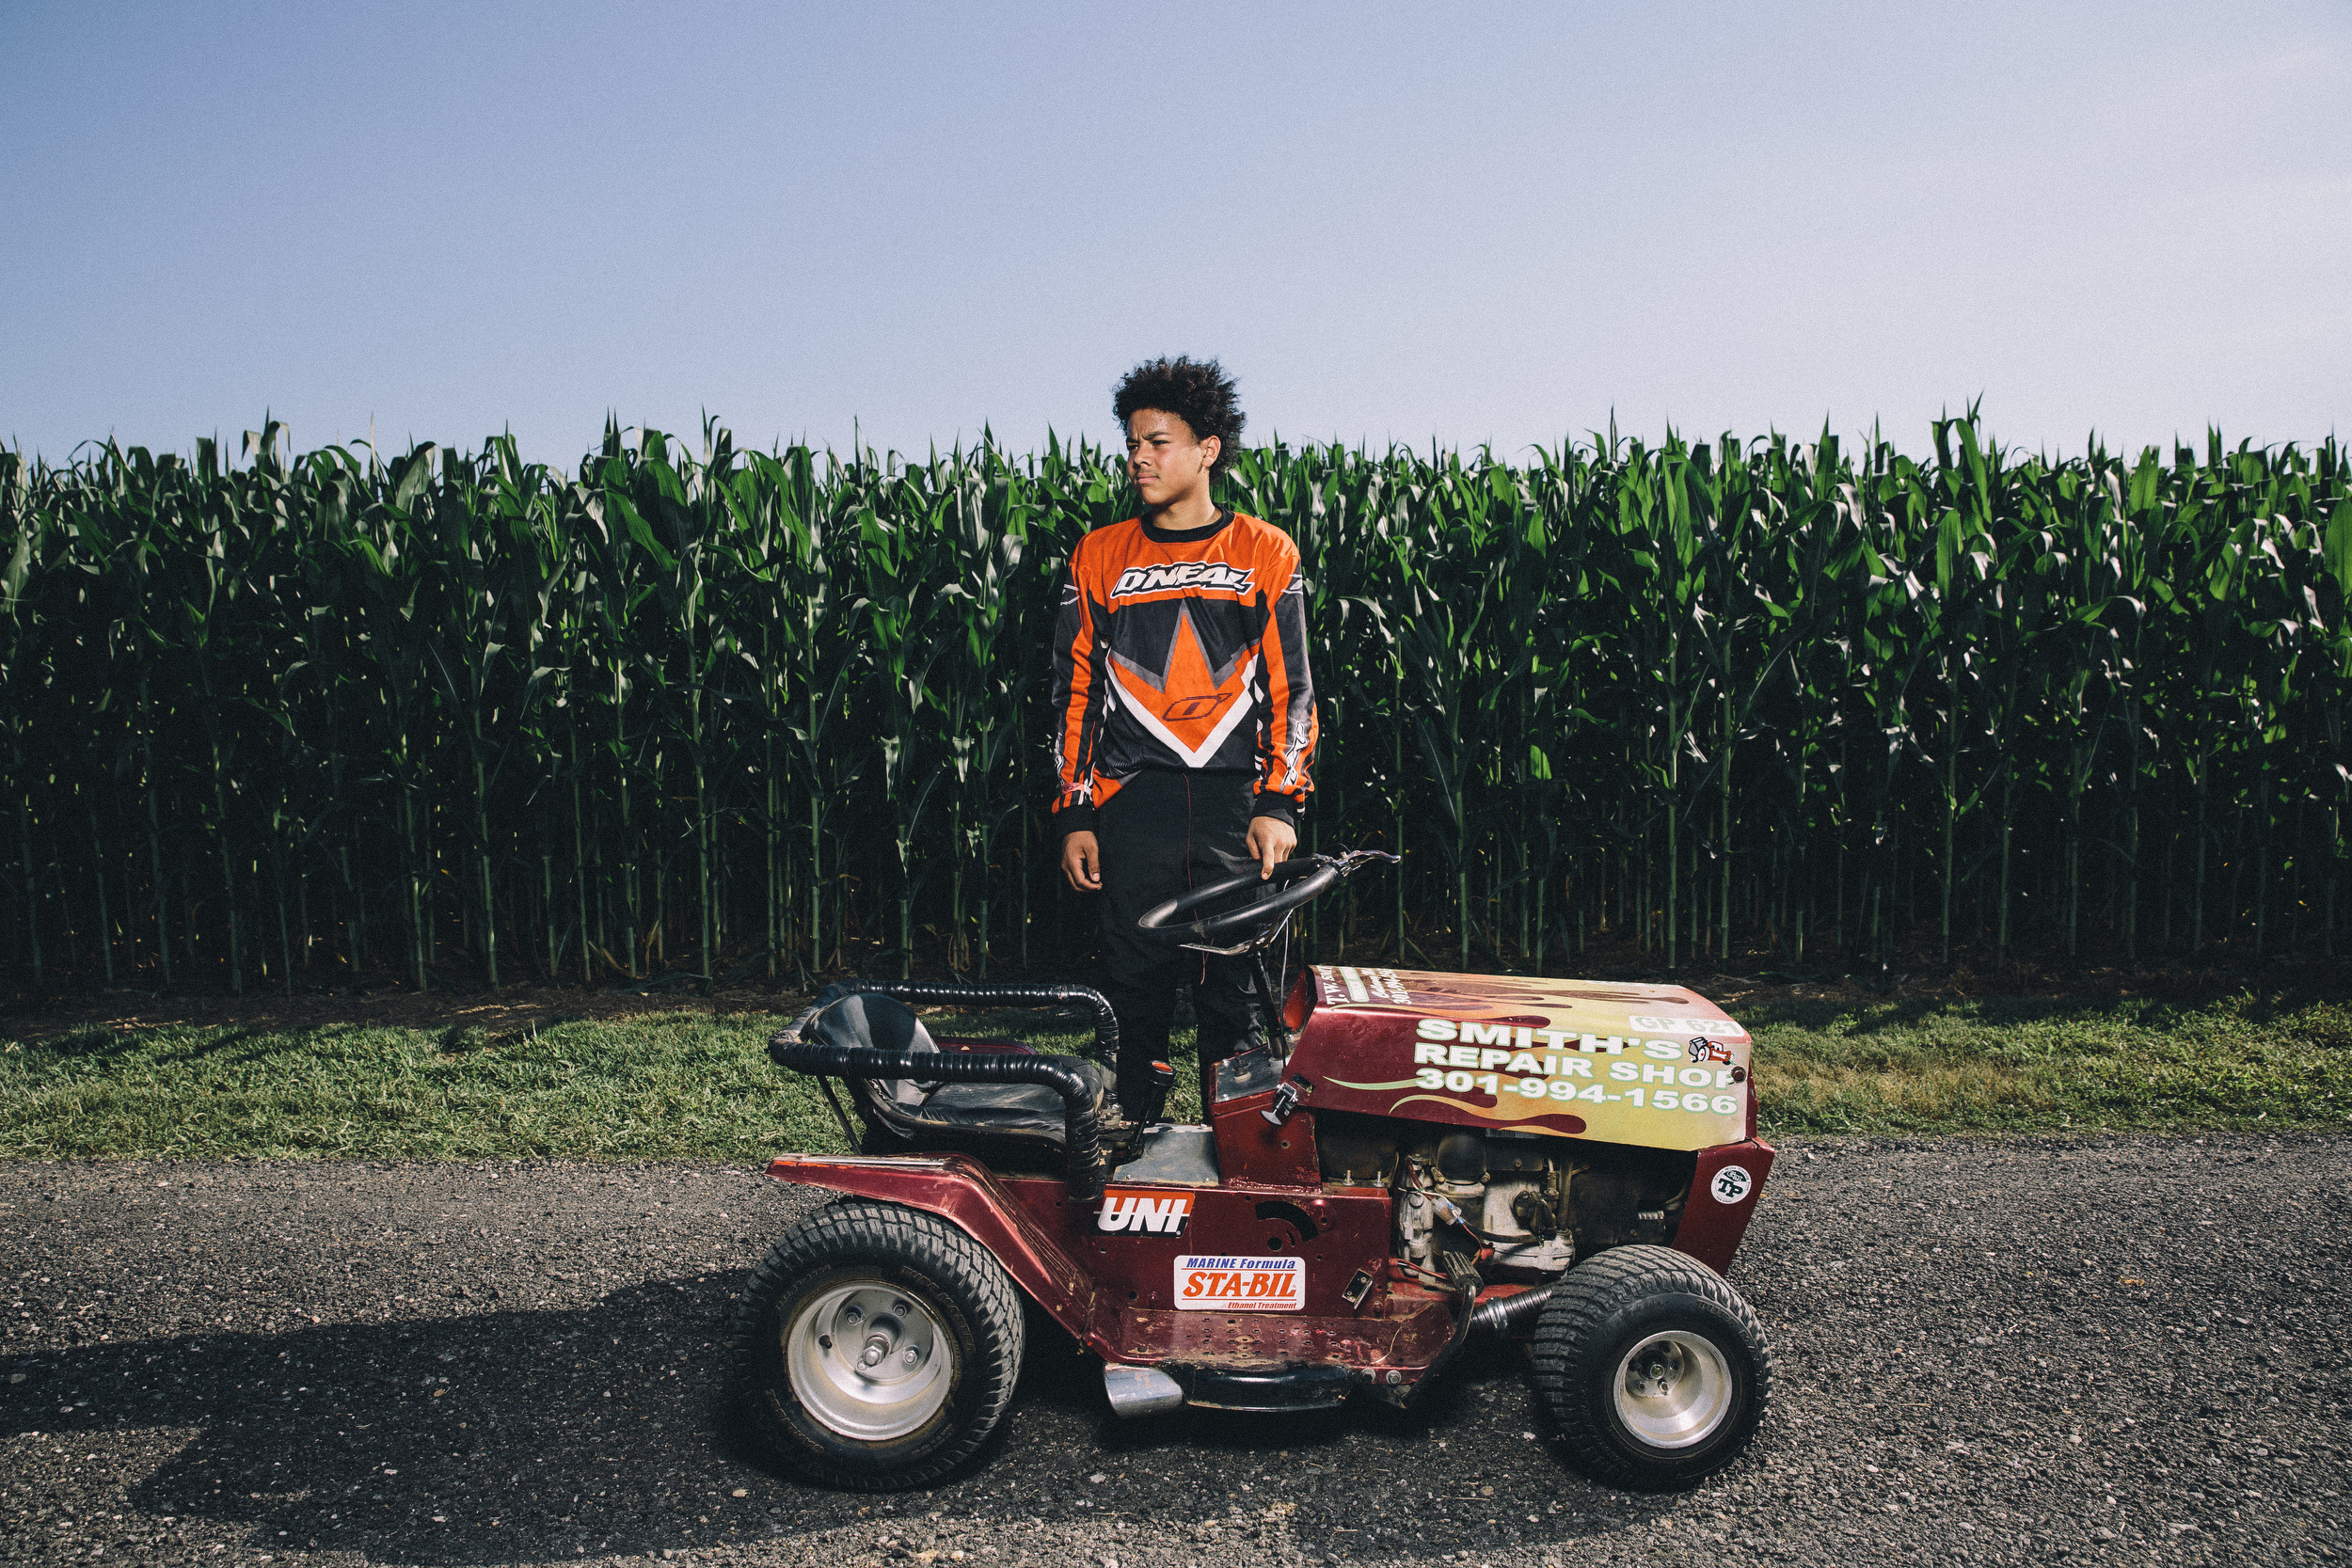 July 31, 2015 and Aug 1, 2015; Clements, MD, USA; Portrait series from the STA-BIL National Lawn Mower Racing Series at Bowles Farm in Clements, MD. Racers posed for portraits, before and during practice heats. Racers competed in at least 10 different mower classes on a 700 ft long dirt track. The course is surrounded by cornfields. Mandatory Credit: Brian Schneider-www.ebrianschneider.comInstagram - @ebrianschneiderTwitter - @brian_schneiderFacebook - Facebook.com/ebrianschneider or Facebook.com/brianschneiderphotography